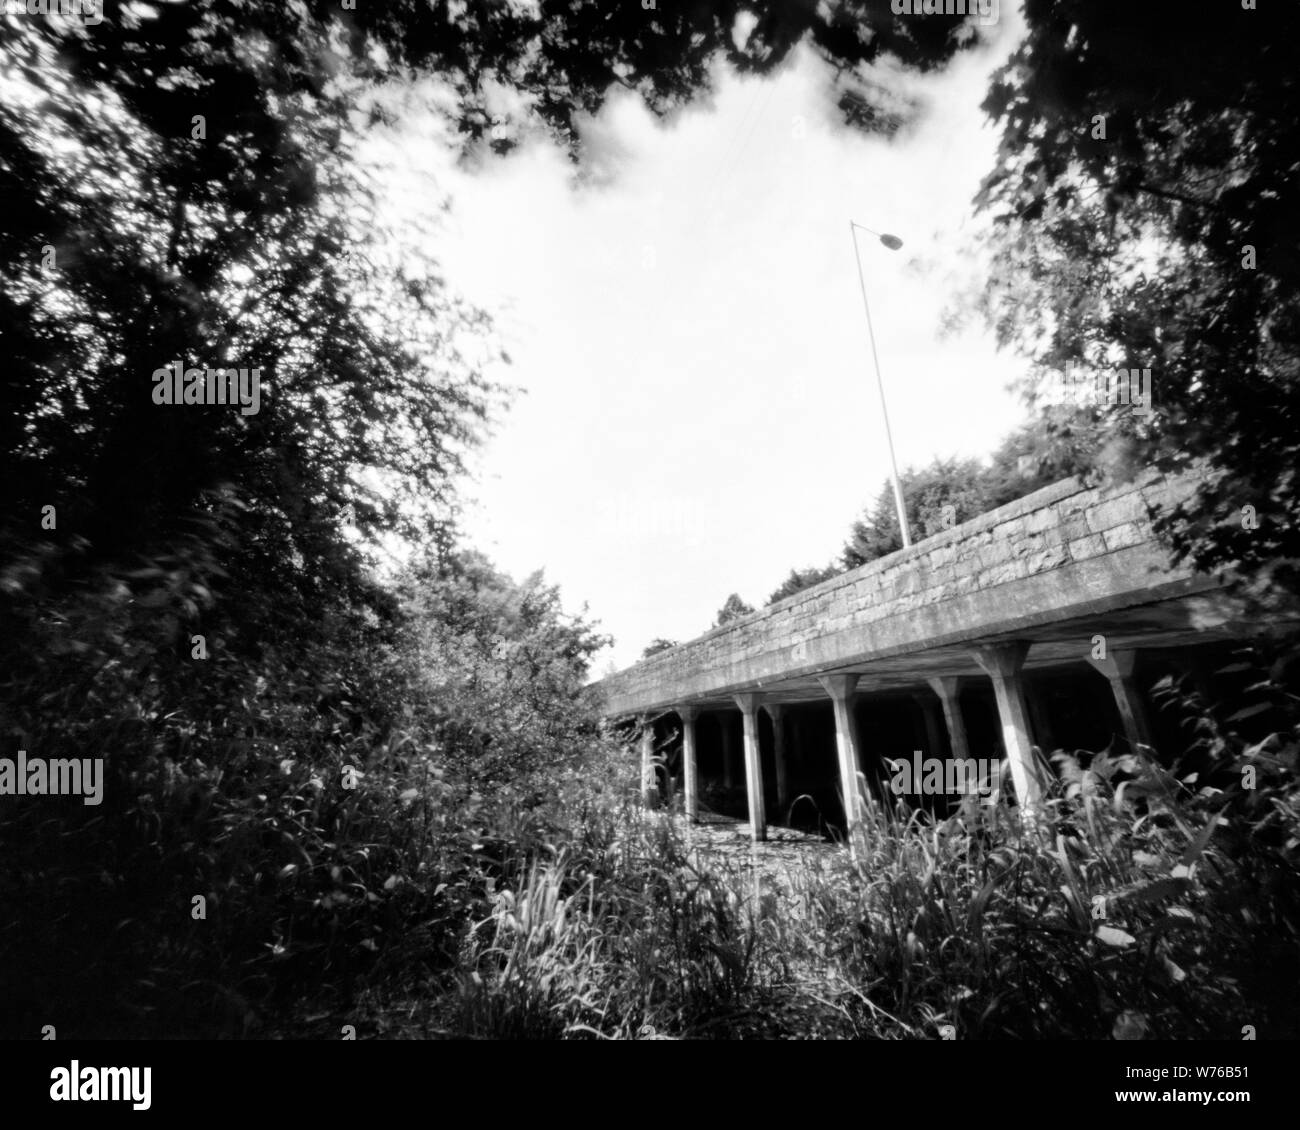 Bridge And Trees In The Spring This Black And White Camera Obscura Photo Is Not Sharp Due To Camera Characteristic Taken On Analogue Photographic La Stock Photo Alamy